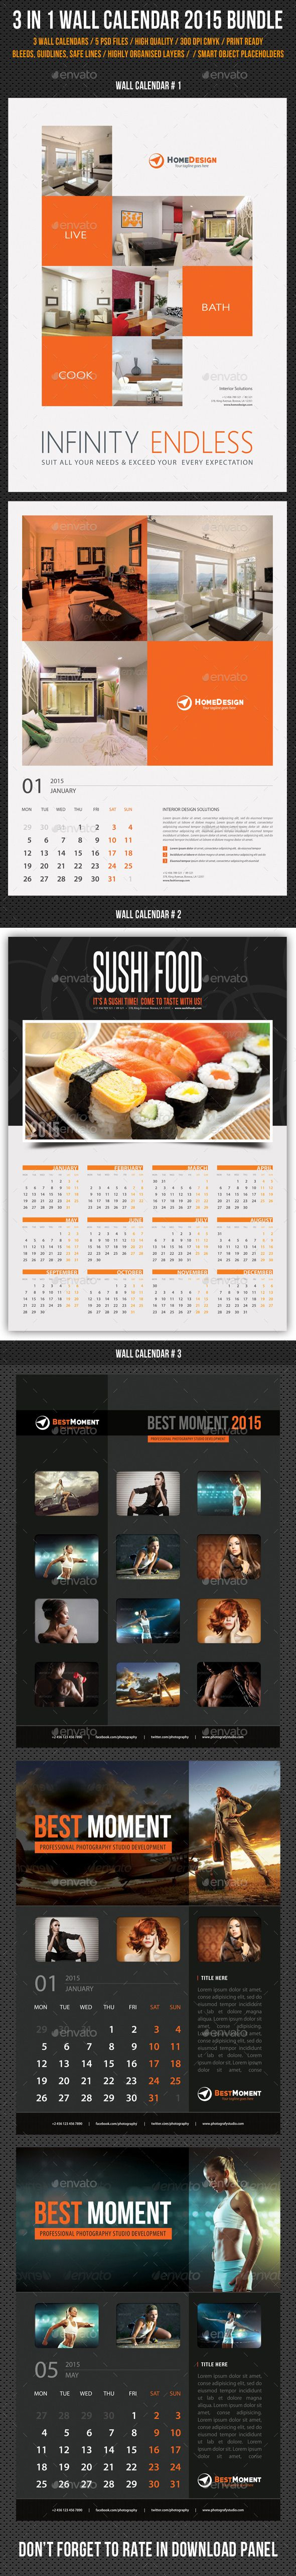 3 in 1 Wall Calendar 2015 Bundle Template | Buy and Download: http://graphicriver.net/item/3-in-1-wall-calendar-2015-bundle-v06/9573448?ref=ksioks